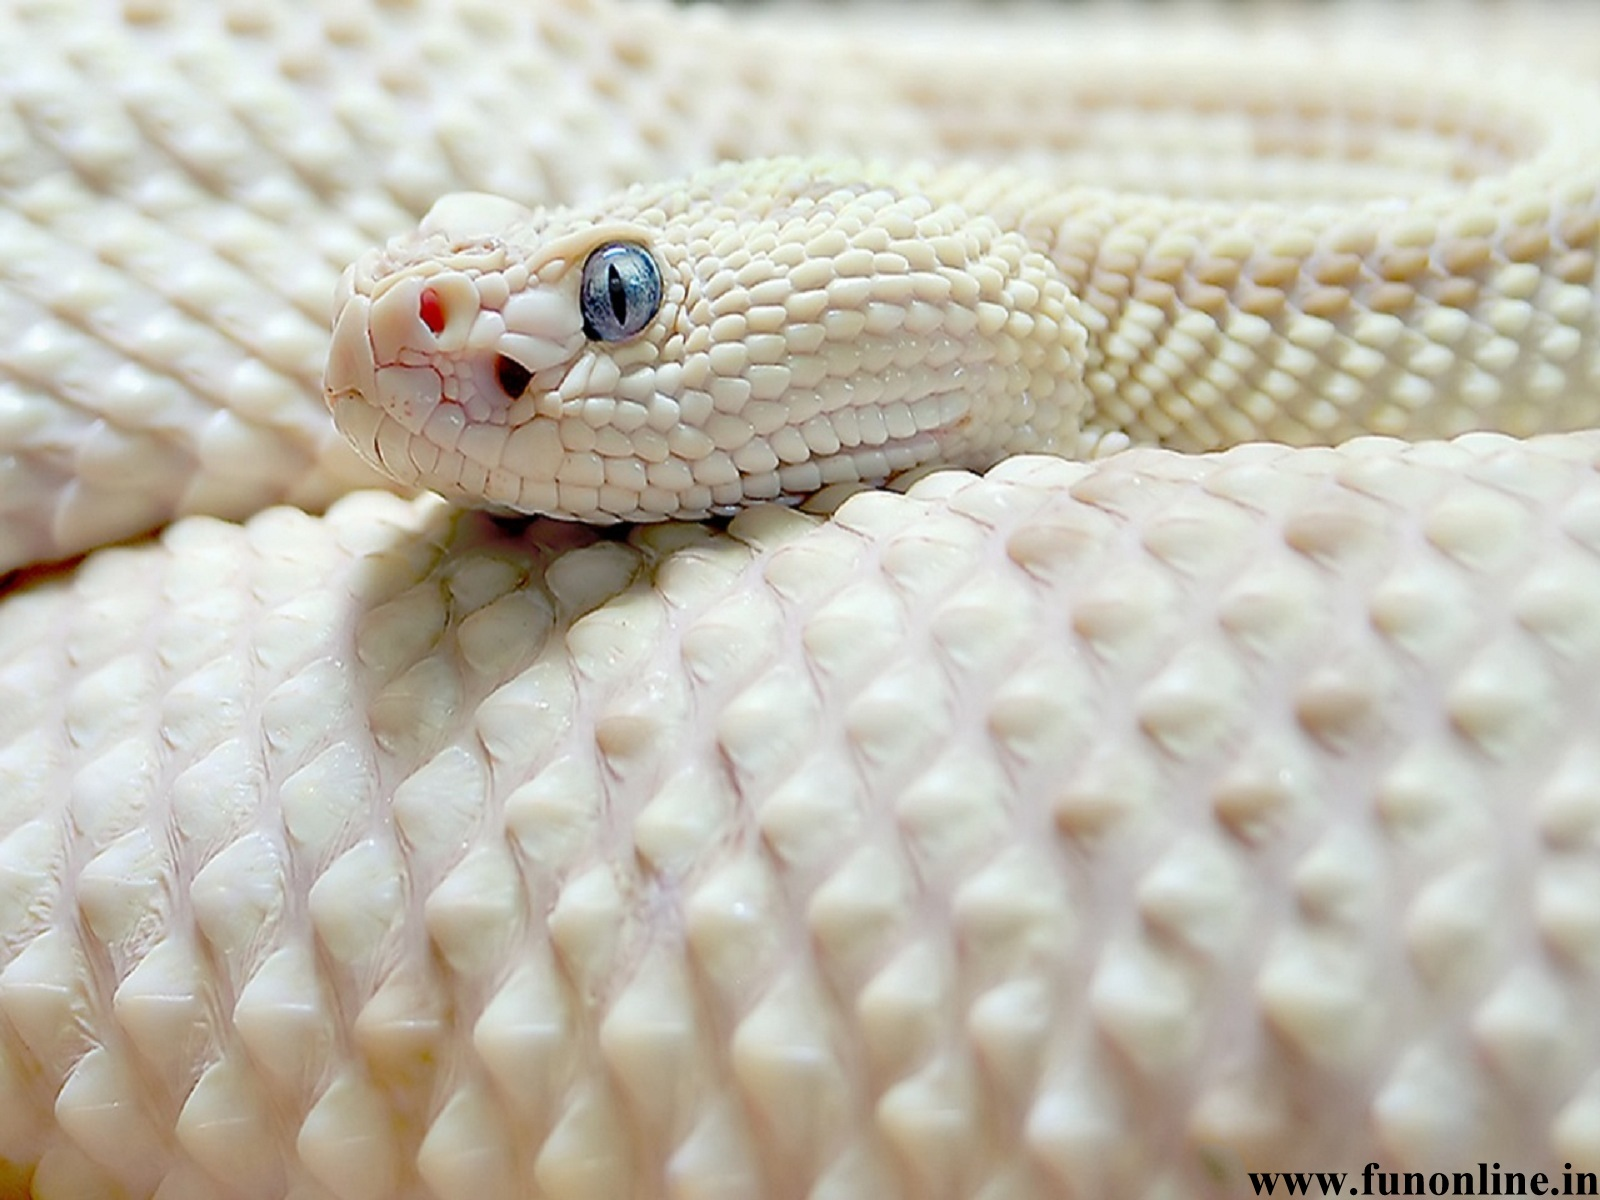 Snake Wallpapers Download Poisonous and Deadly Snakes HD Wallpapers 1600x1200